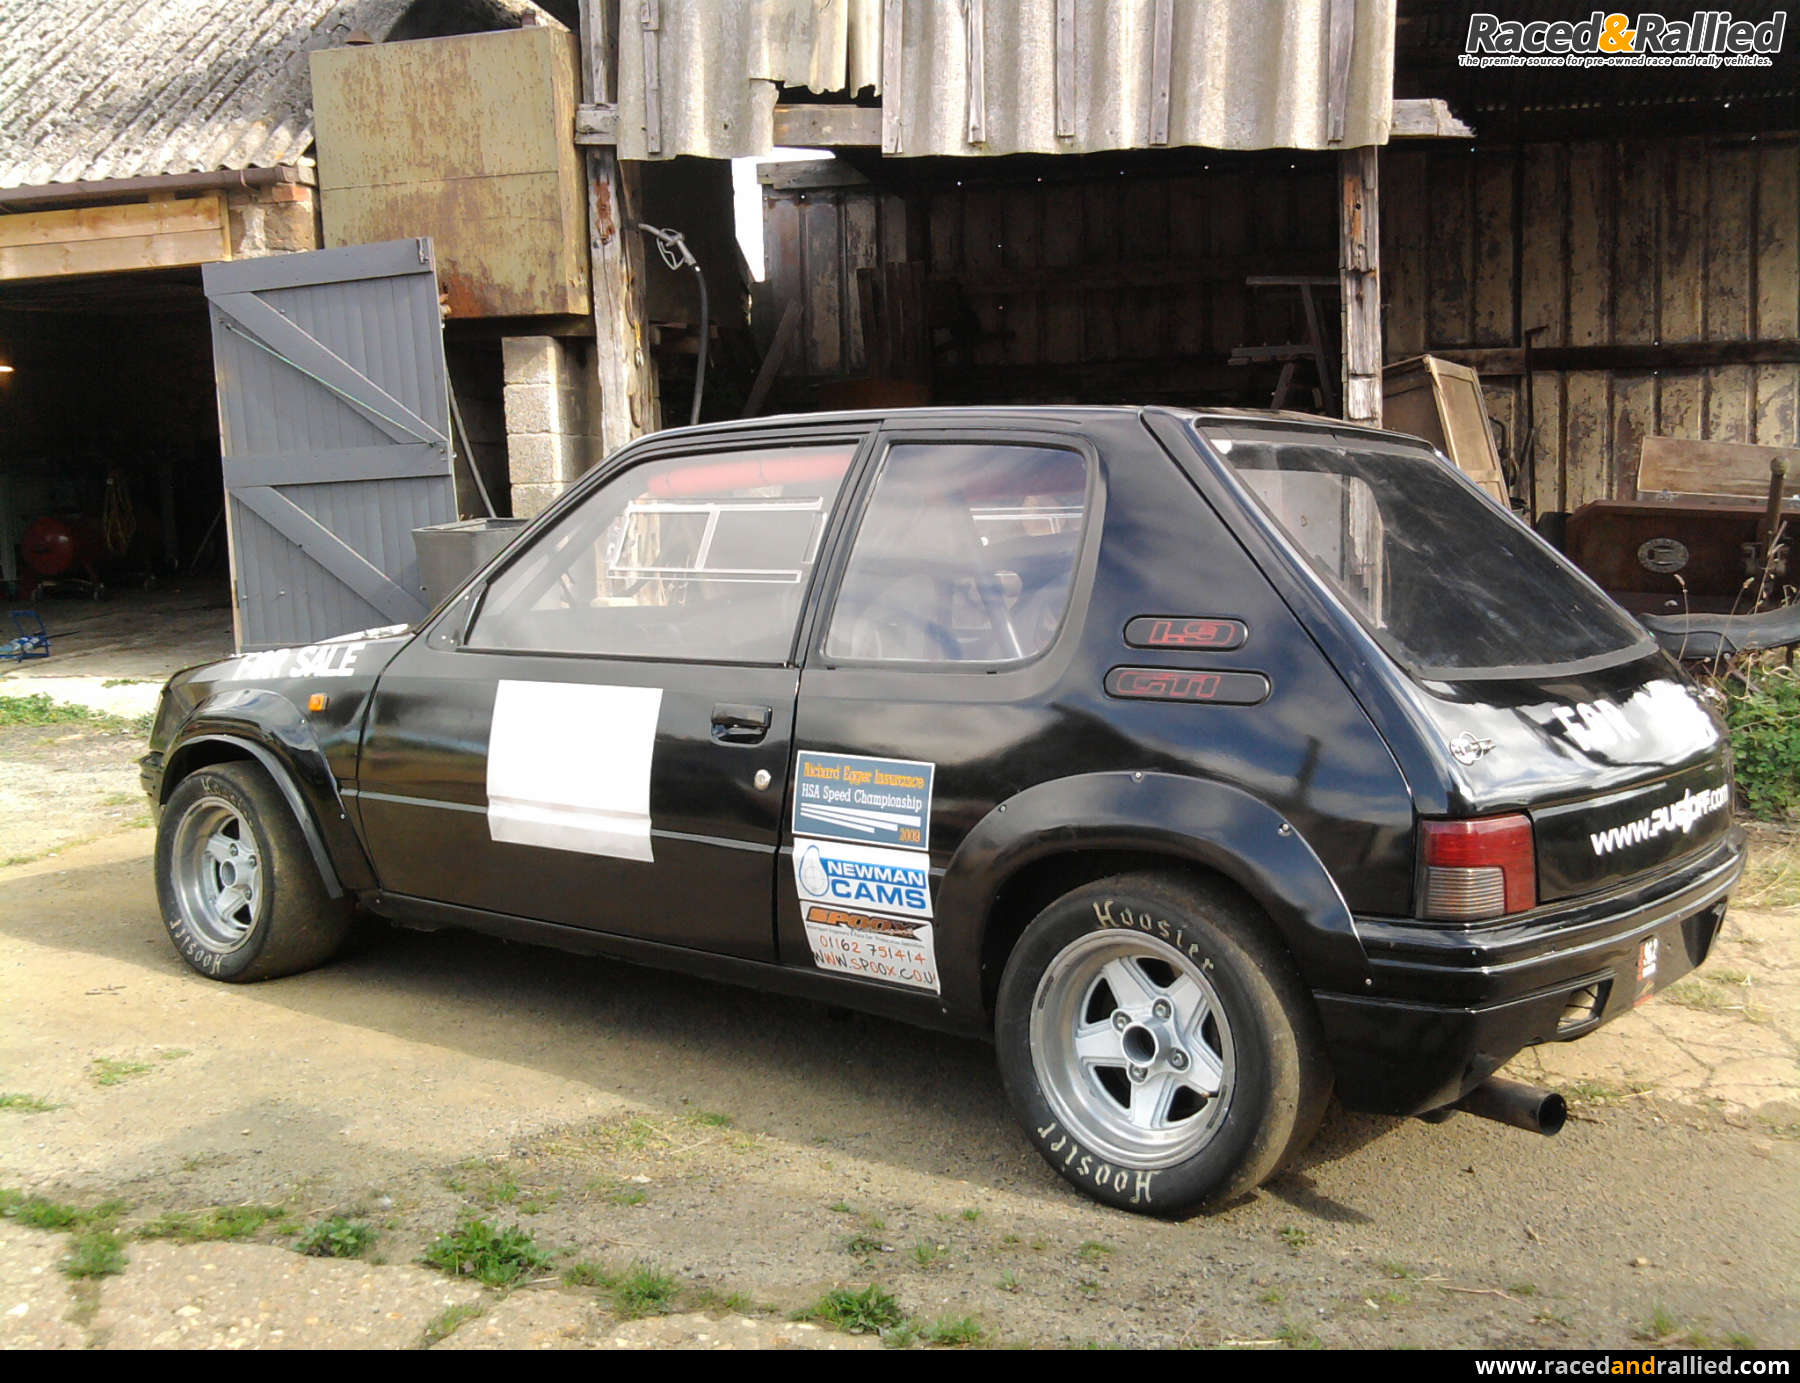 Race Cars For Sale At Raced Rallied: Peugeot 205 MI16 Hillcimb Trackcar 240bhp/700kgs